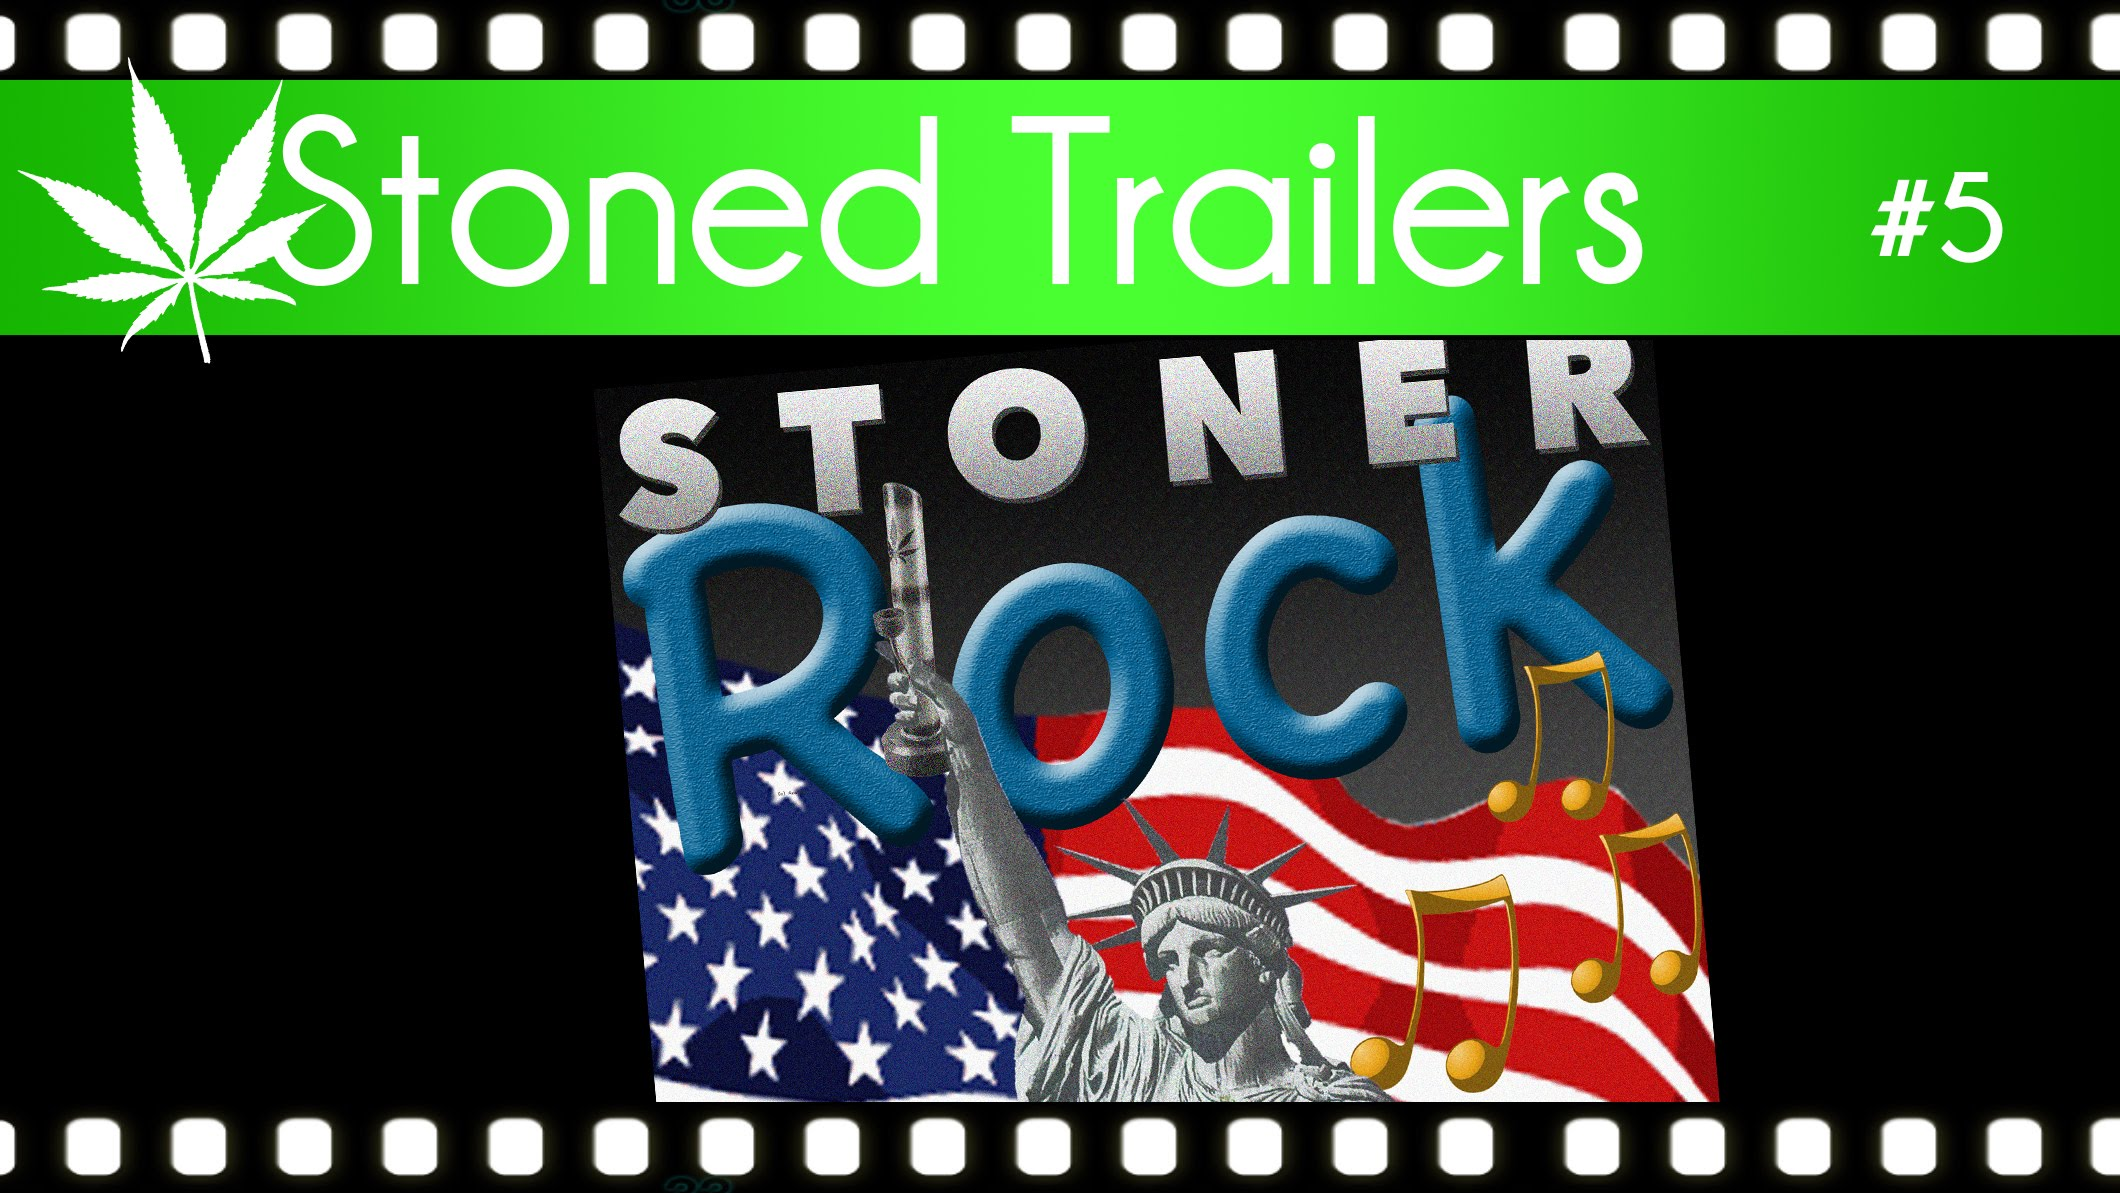 Stoned Trailers #5: Stoner Rock (Freedom Rock Commercial Parody)